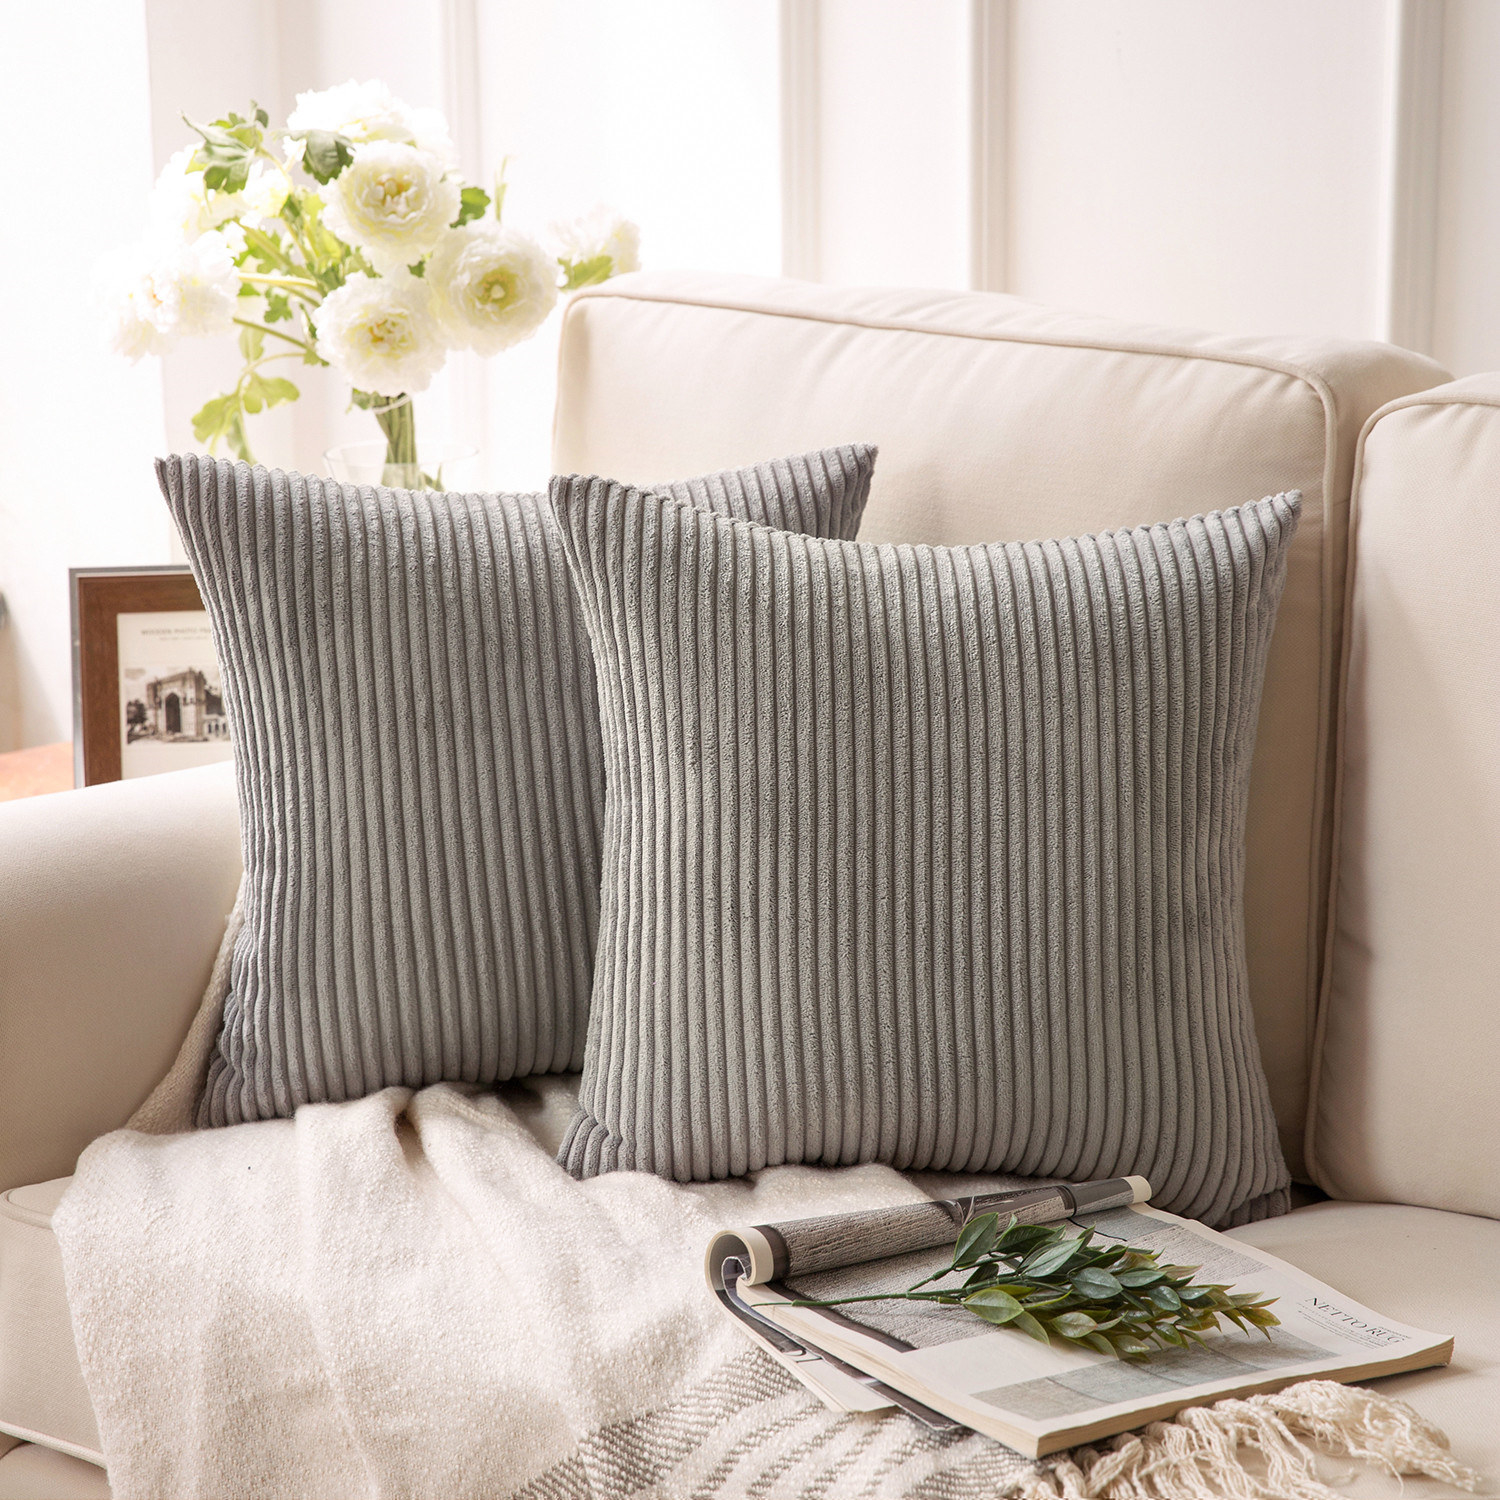 the pillows in grey displayed on a couch on top of a throw